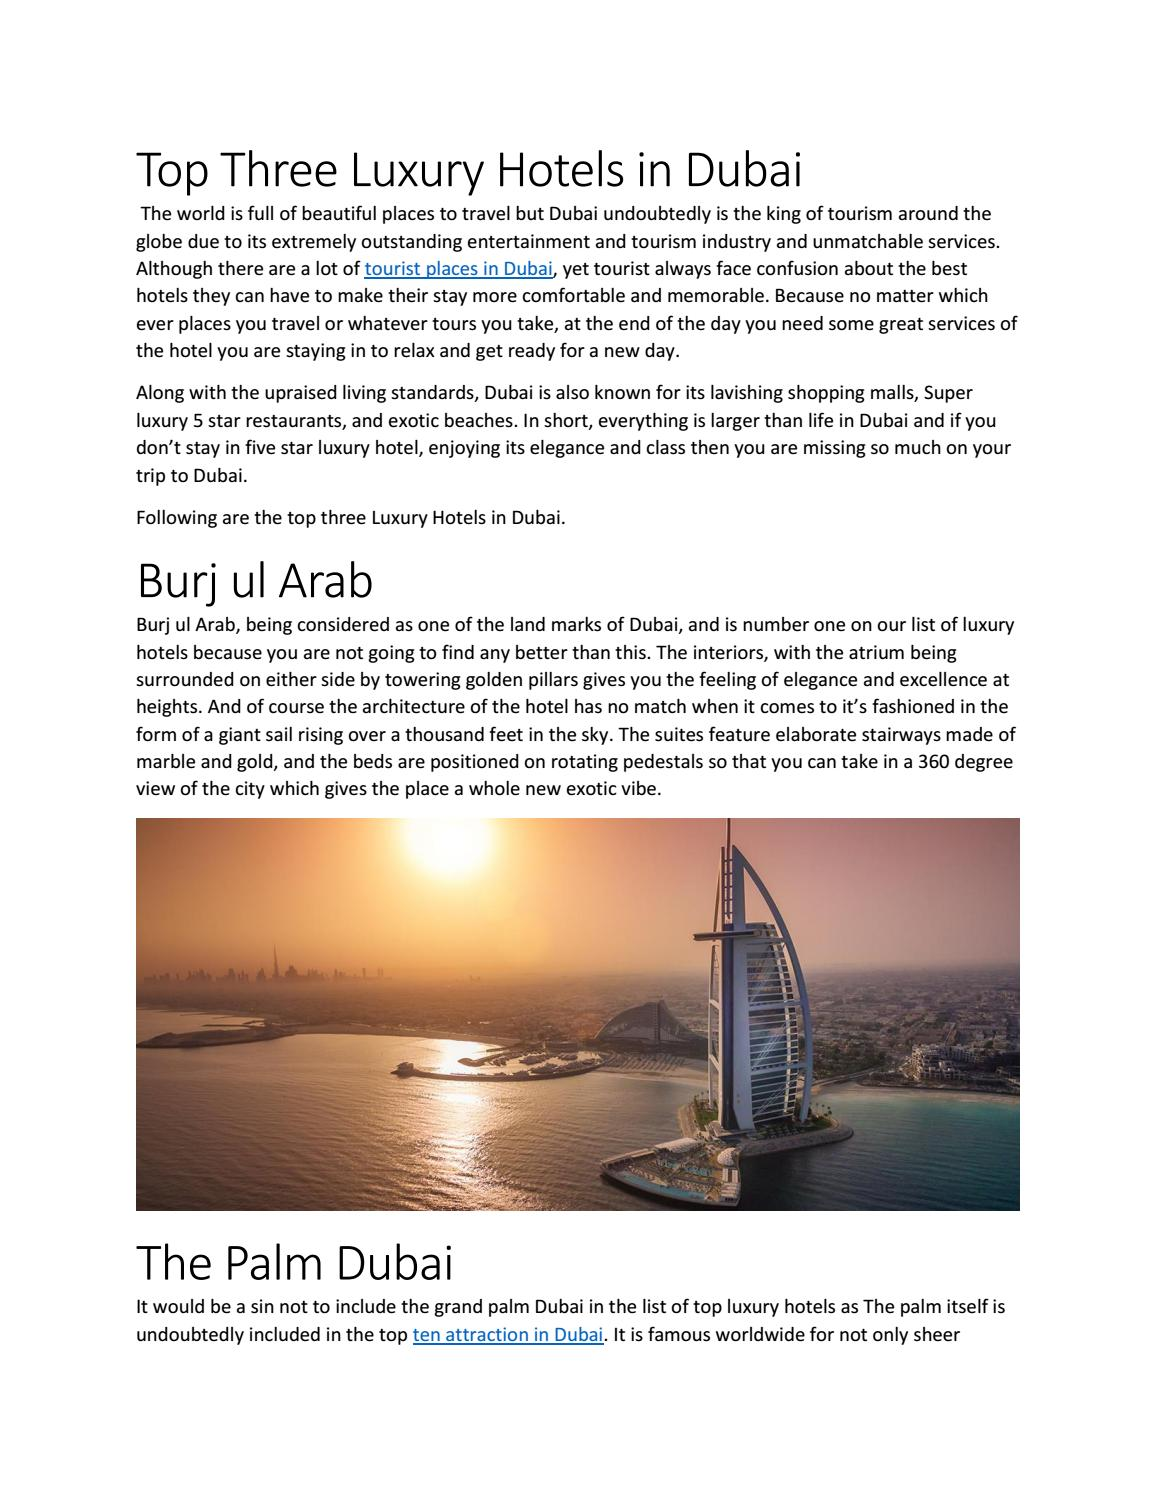 Top four luxury hotels in dubai by mali james - issuu